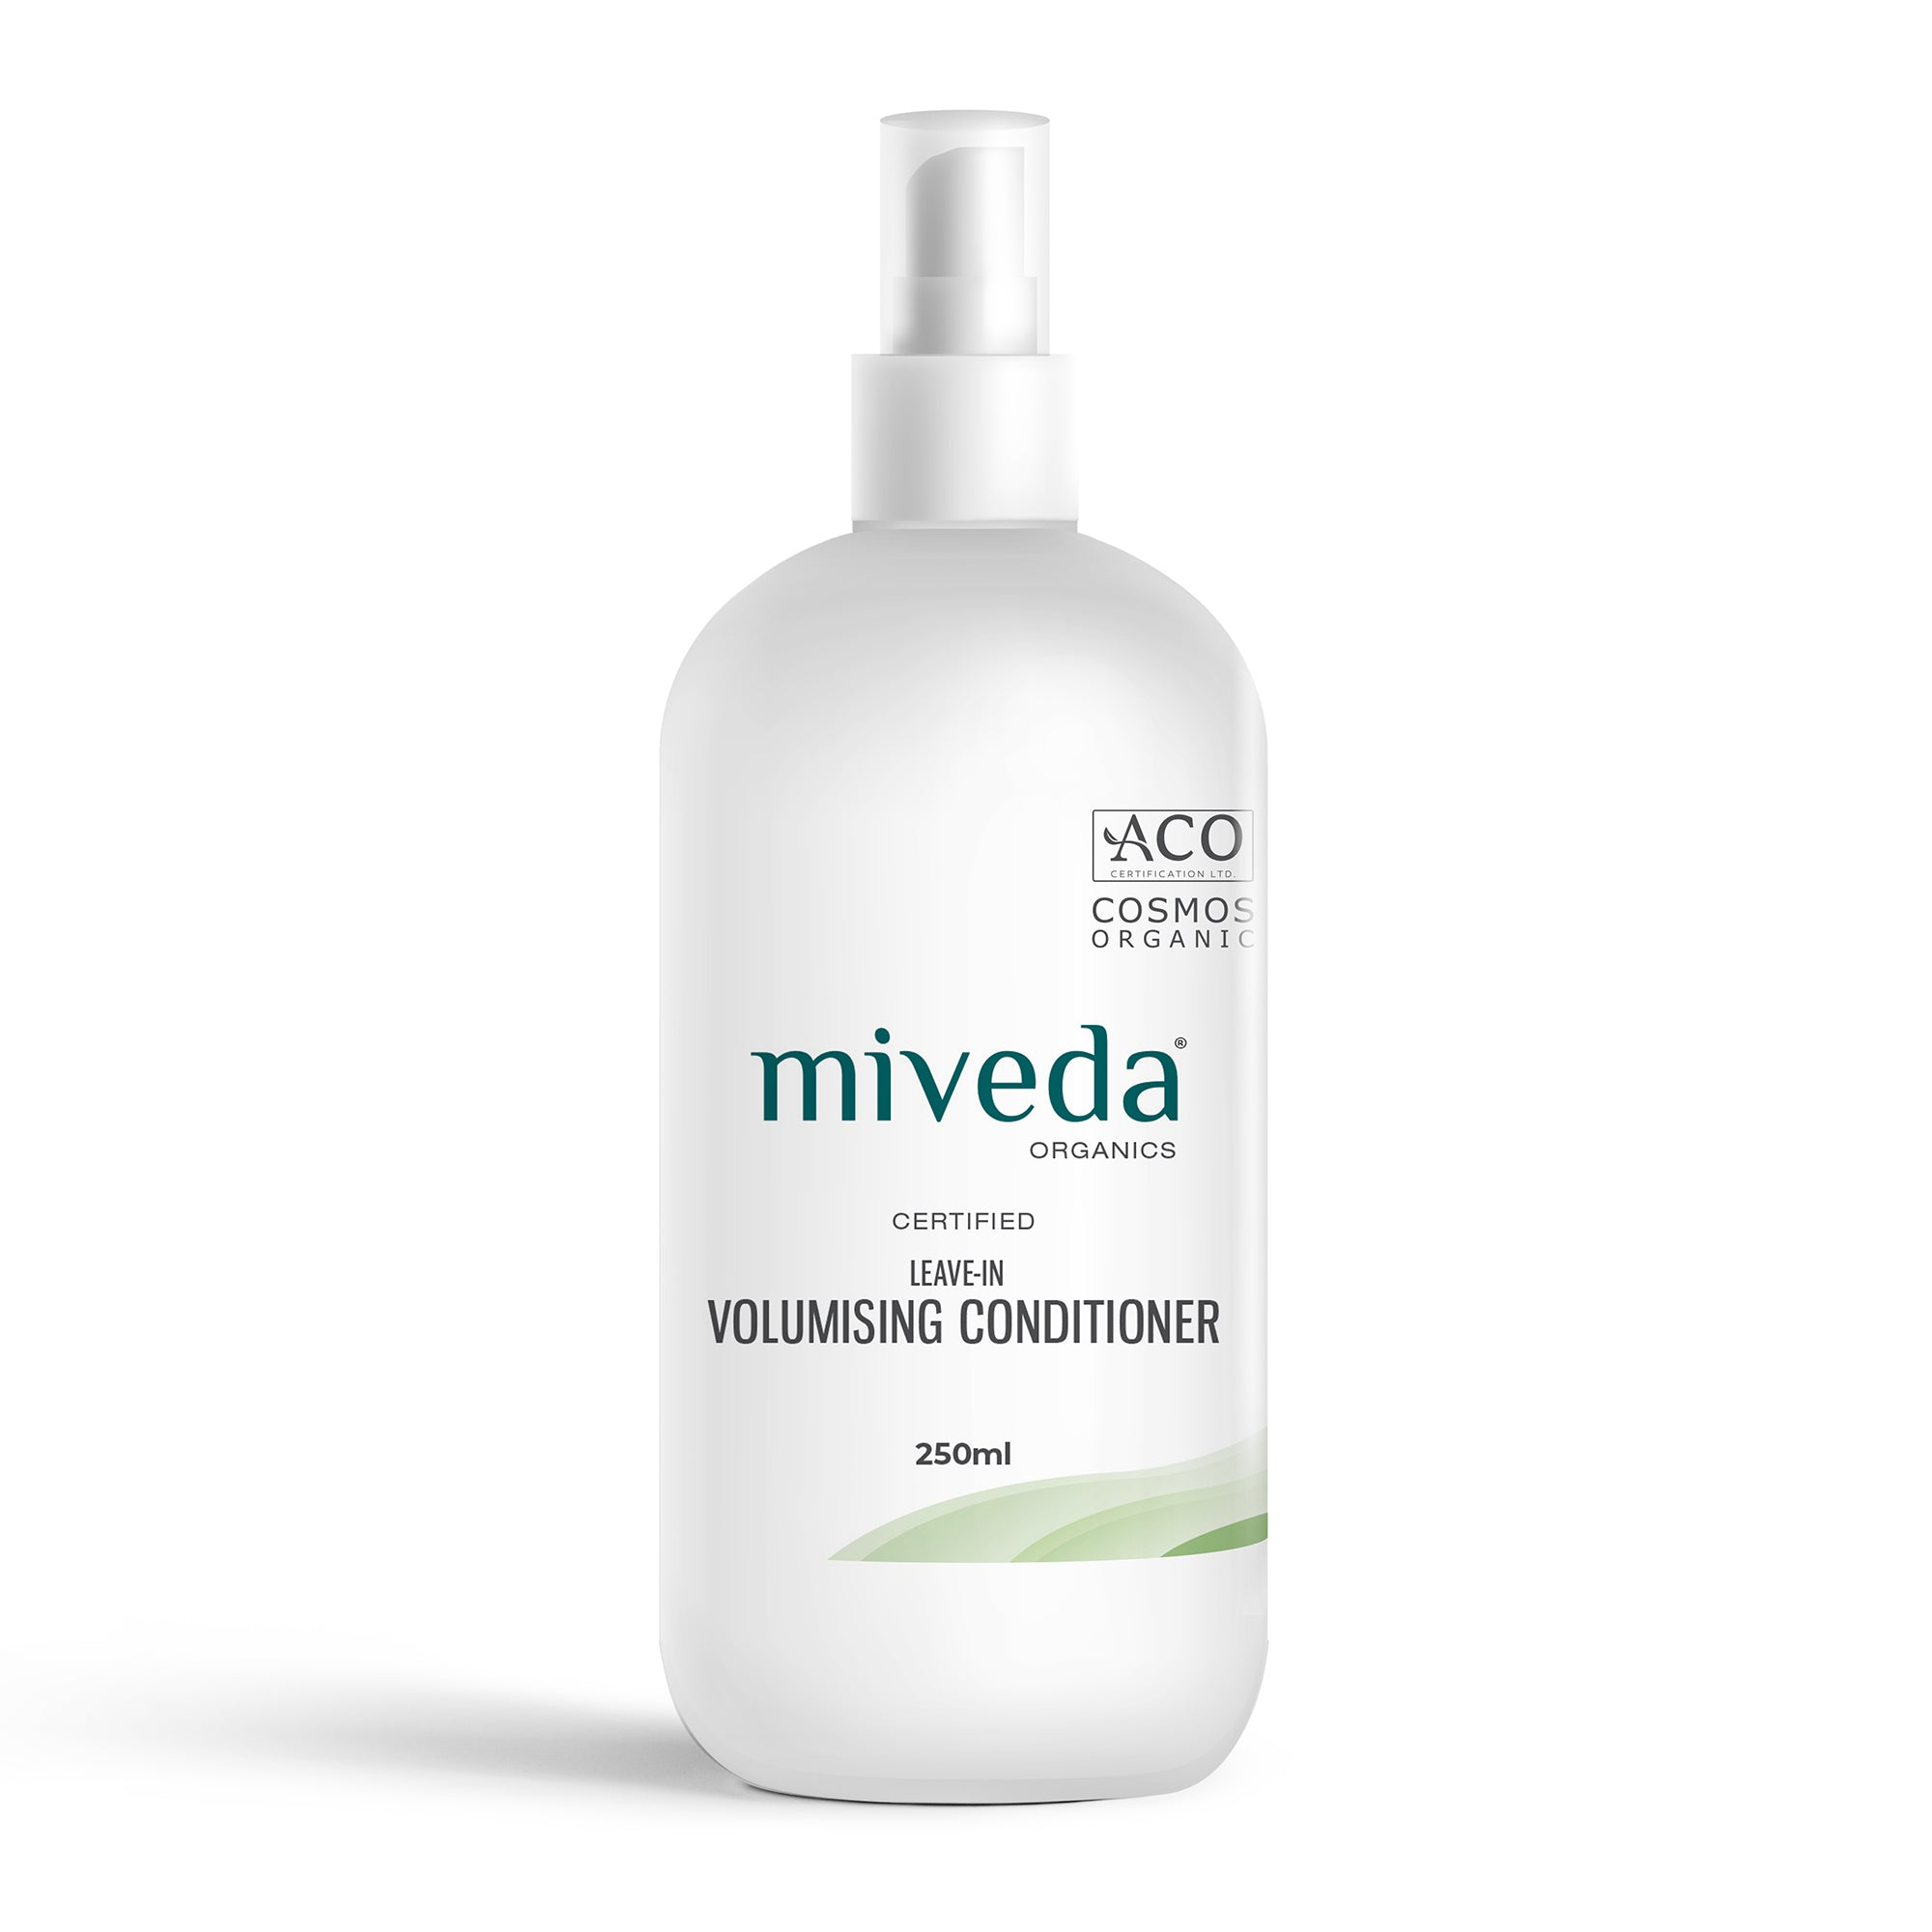 Leave-in Volumising Conditioner 250ml